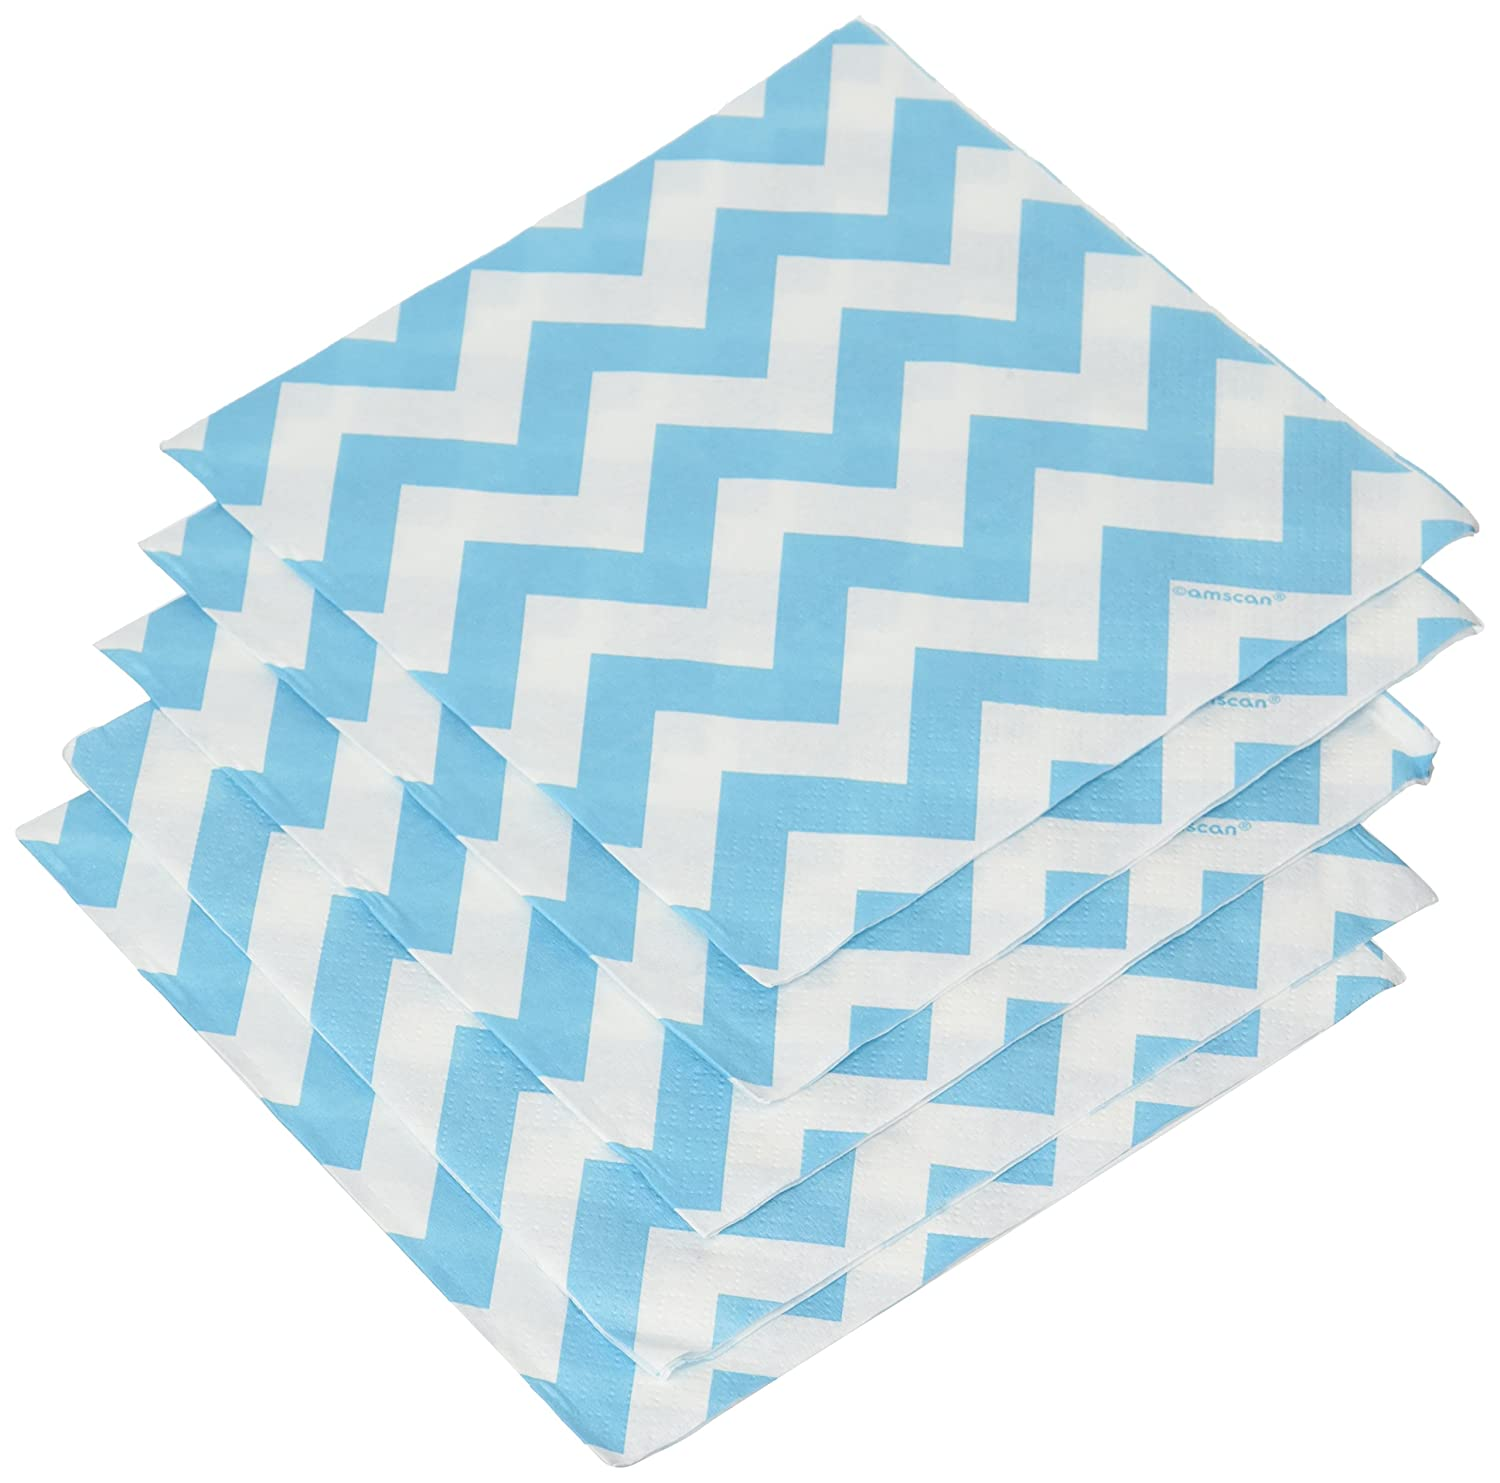 33 cm Amscan International Ltd Serviettes en Papier Motif Chevrons Bleu Turquoise